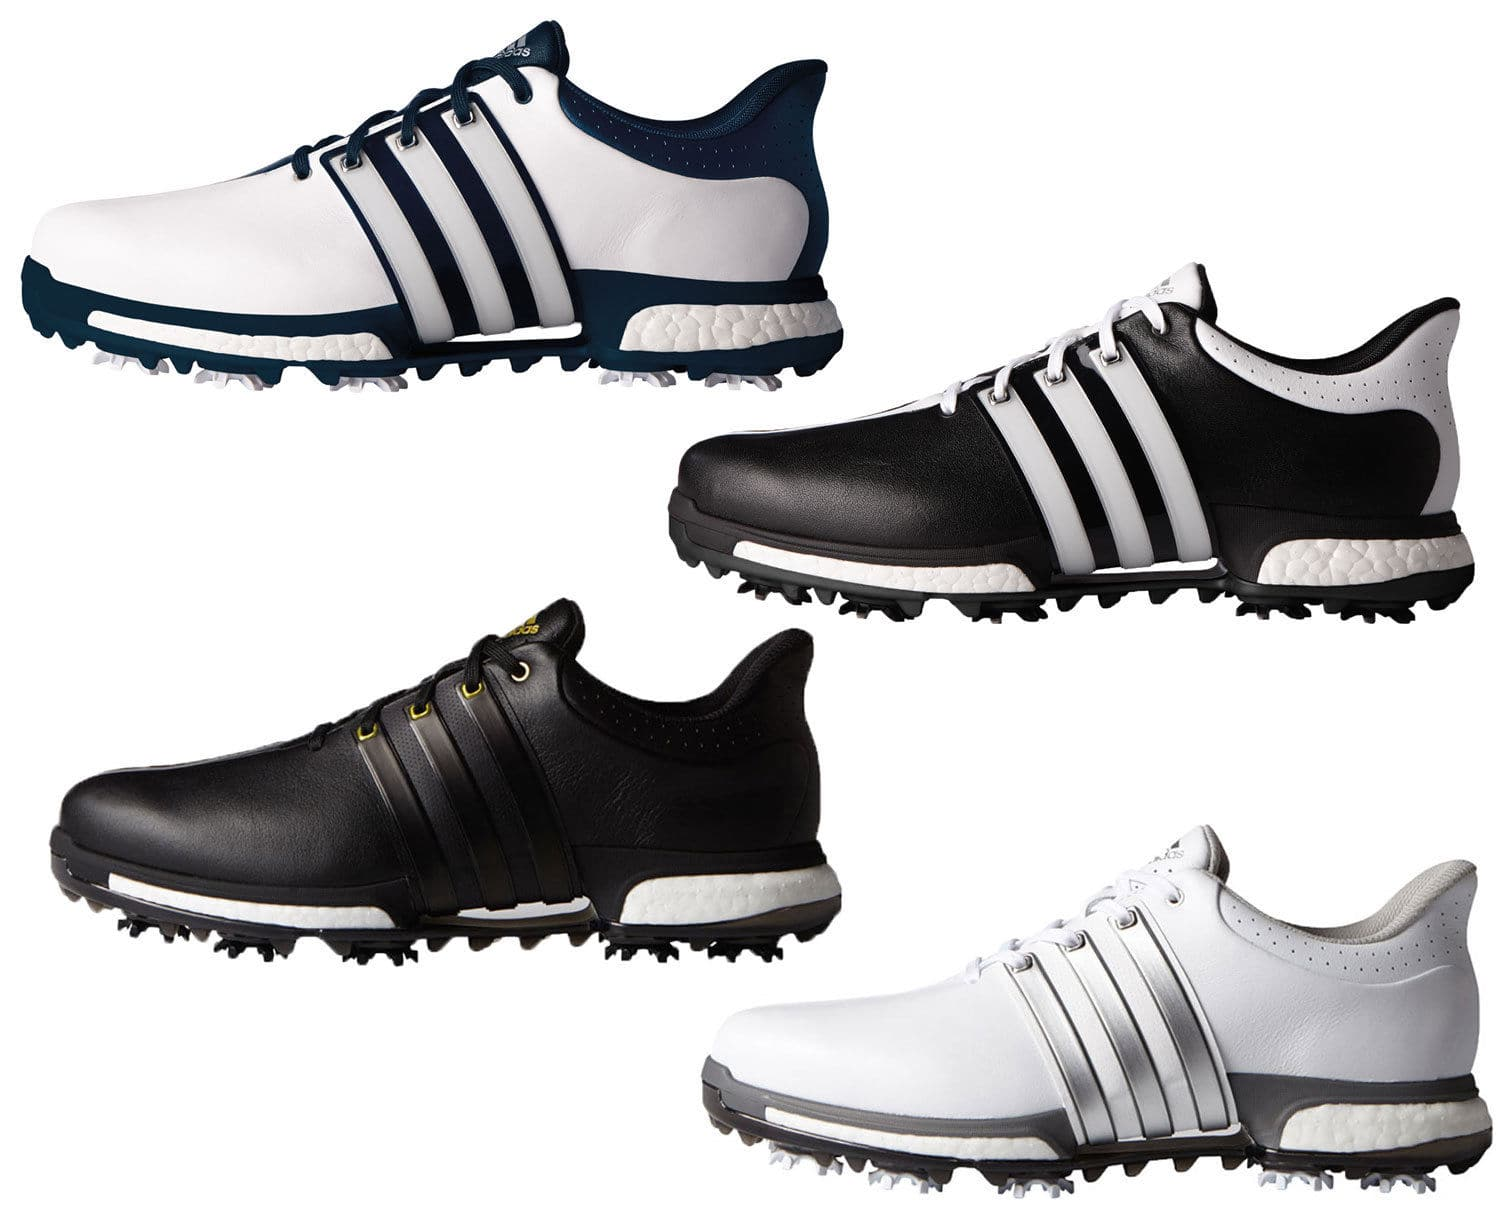 Adidas Tour 360 Boost Golf Shoes 2016 Mens New - Choose Color & Size! $113.99